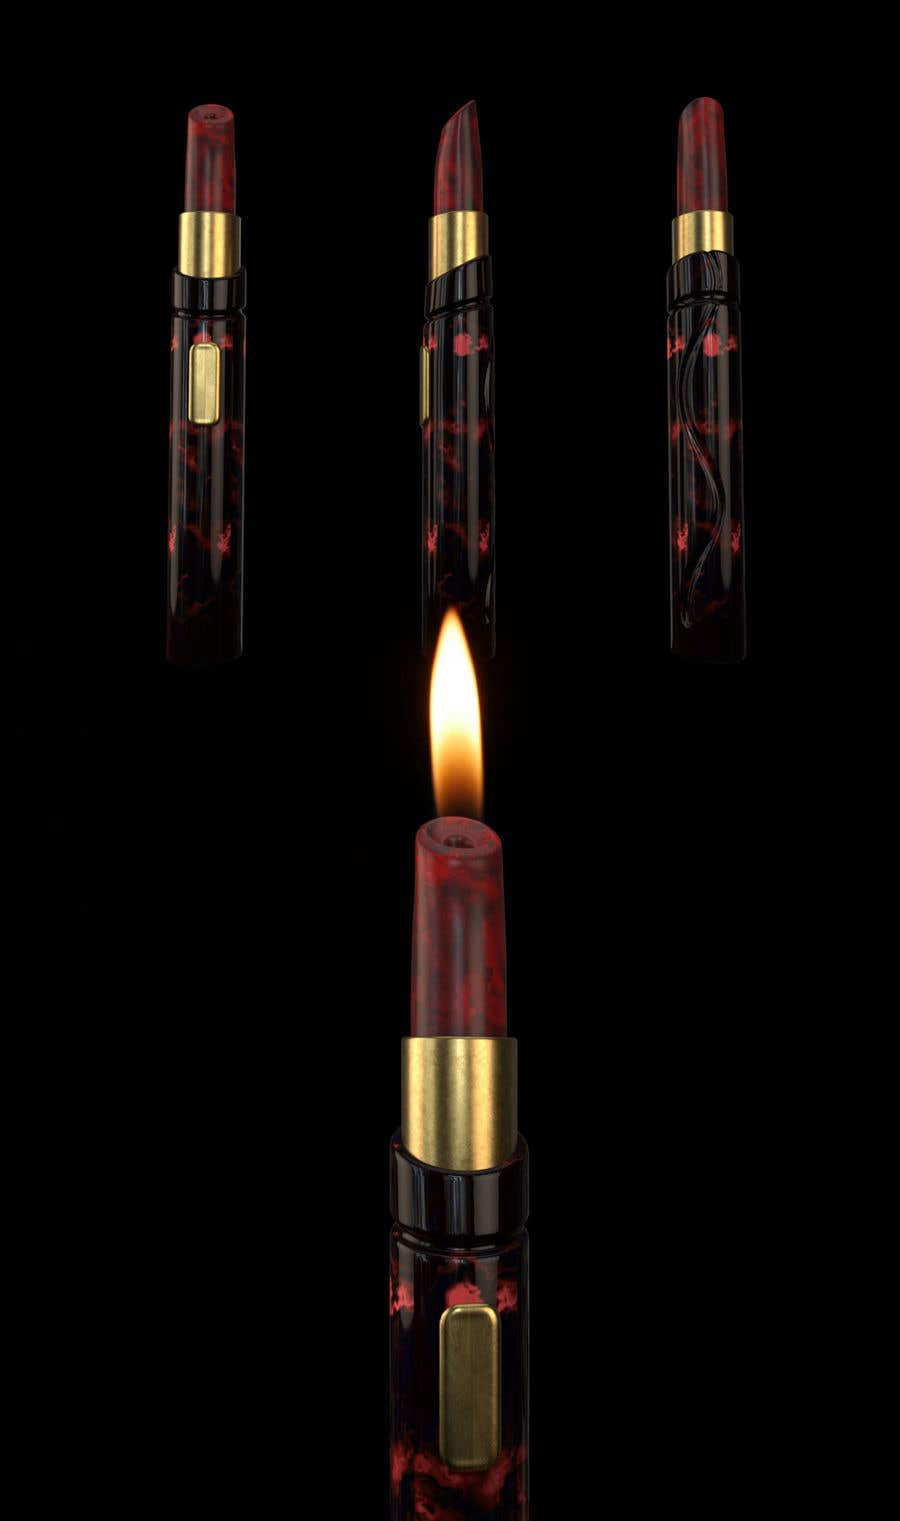 Penyertaan Peraduan #62 untuk I need the design of a product inspired by the picture (Same function but original design), which can be seen with this link: https://www.st-dupont.com/hk_en/lighters/candle-lighter.html